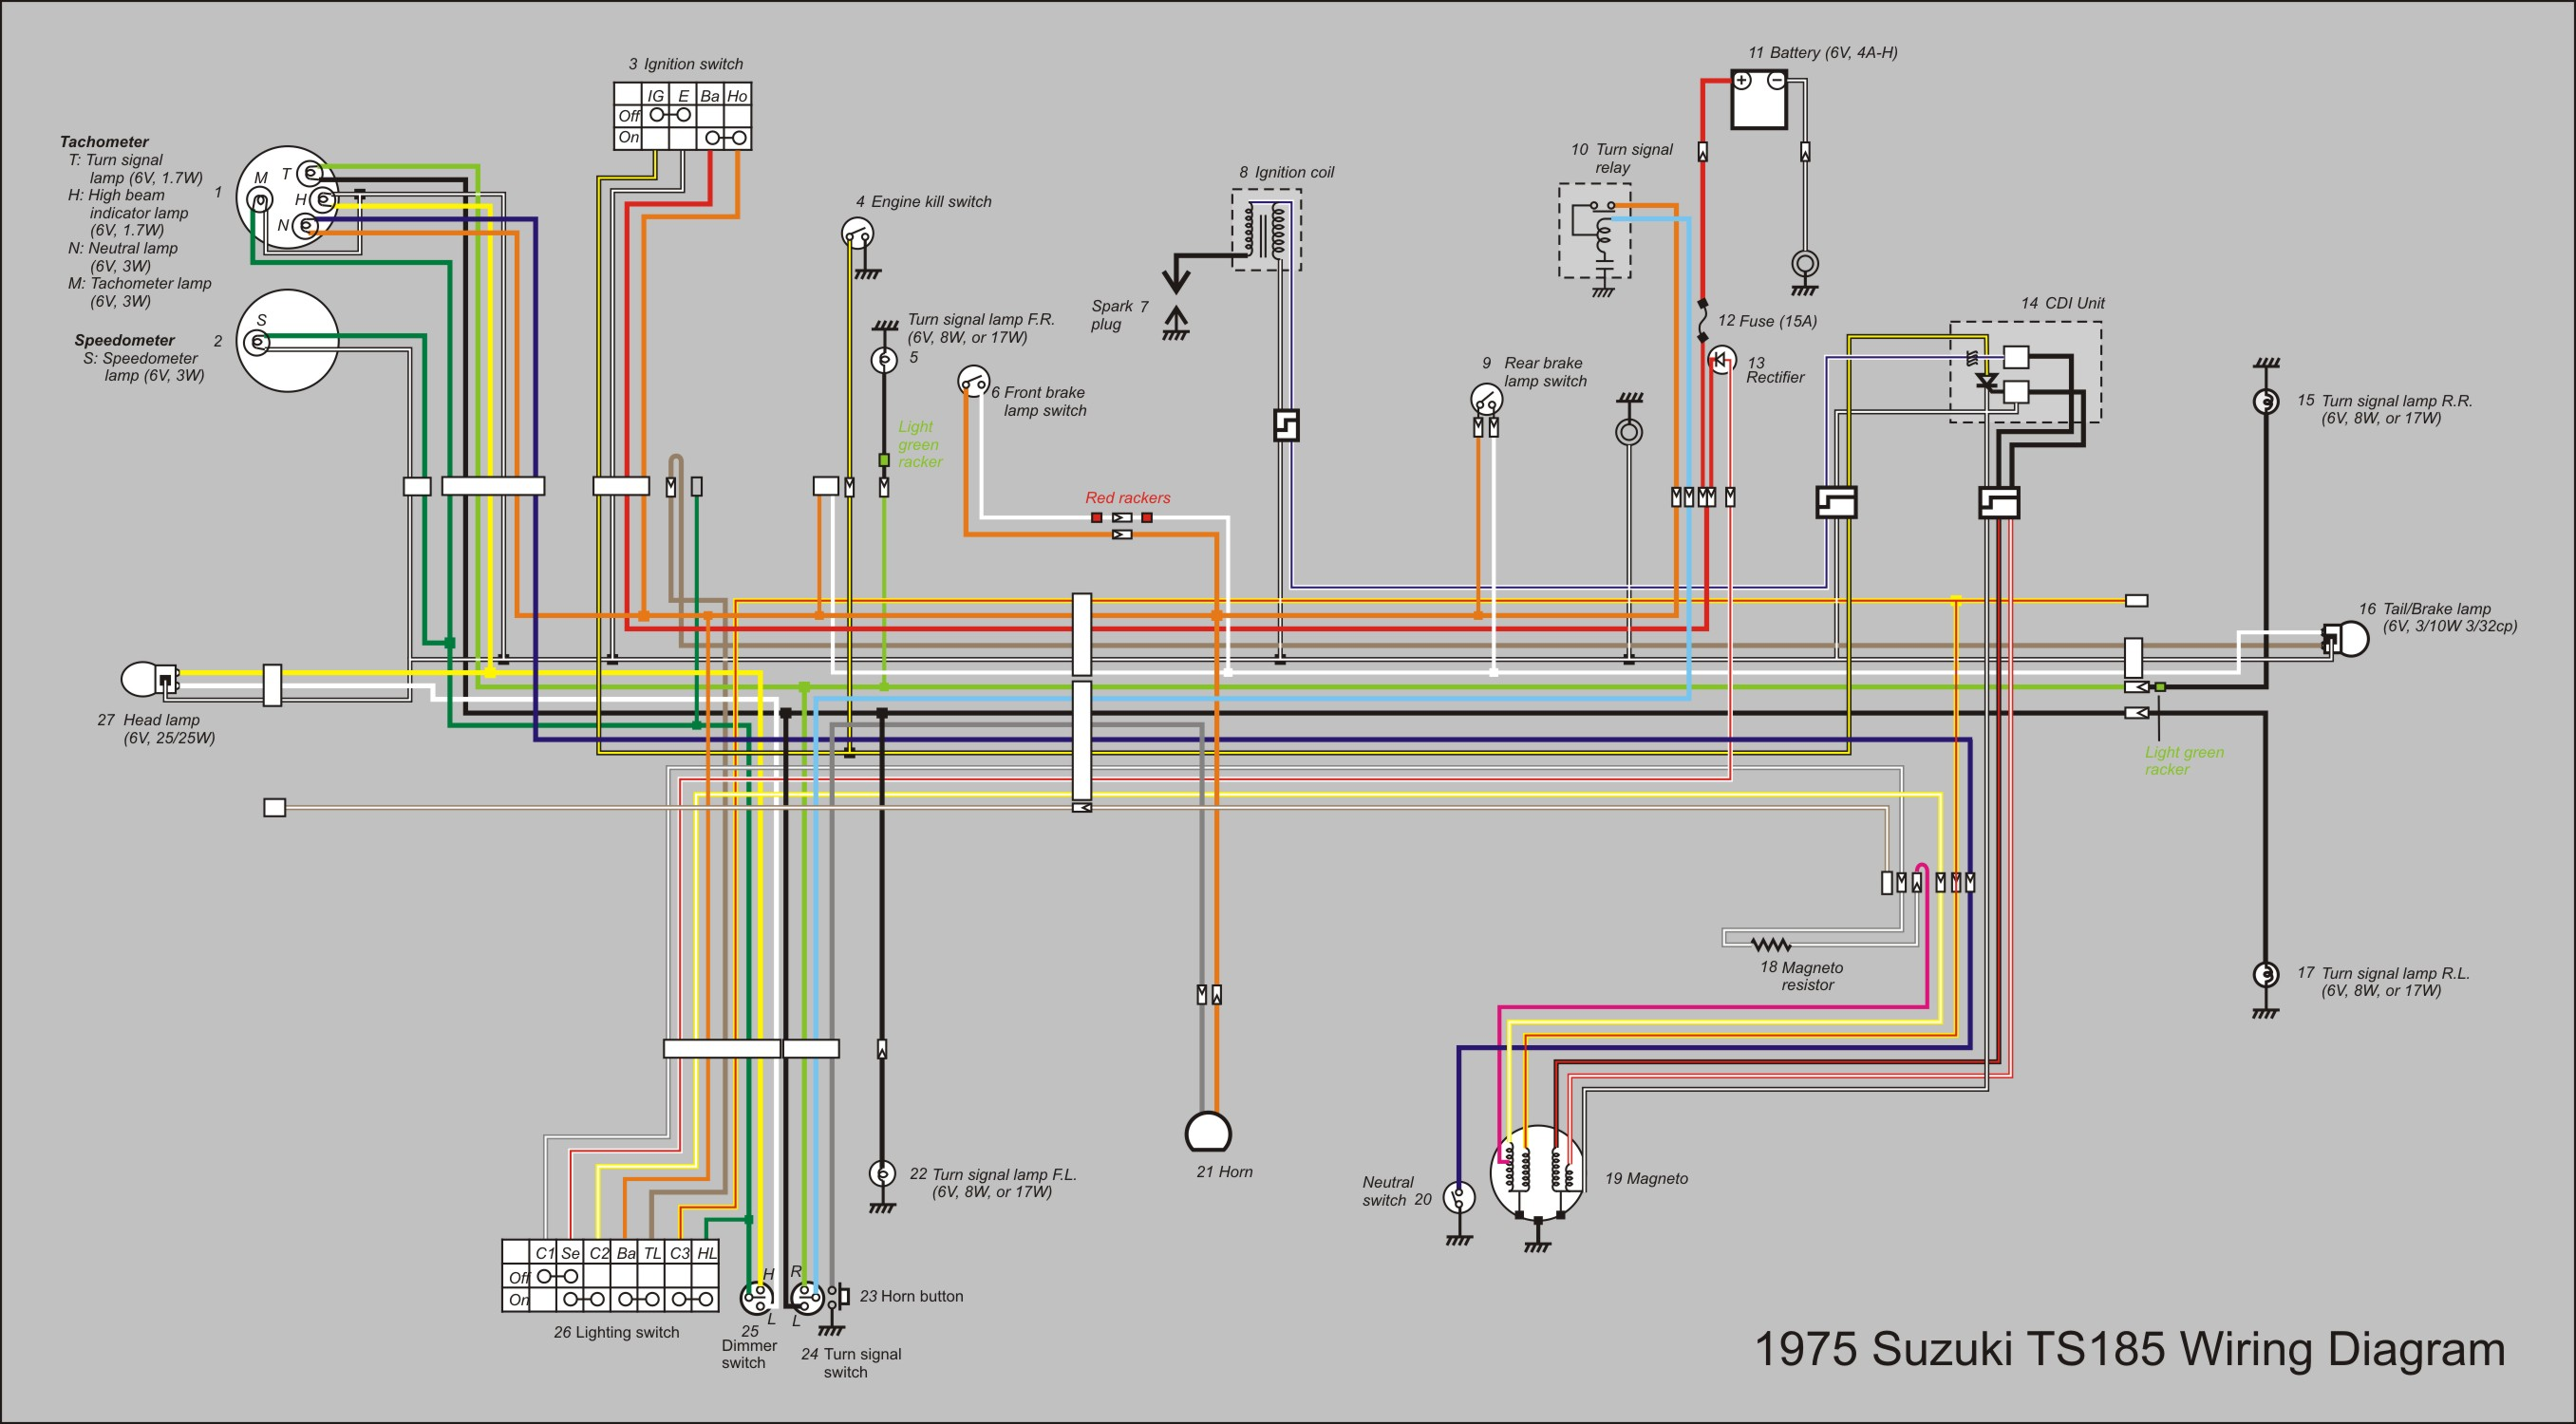 file ts wiring diagram new jpg file ts185 wiring diagram new jpg